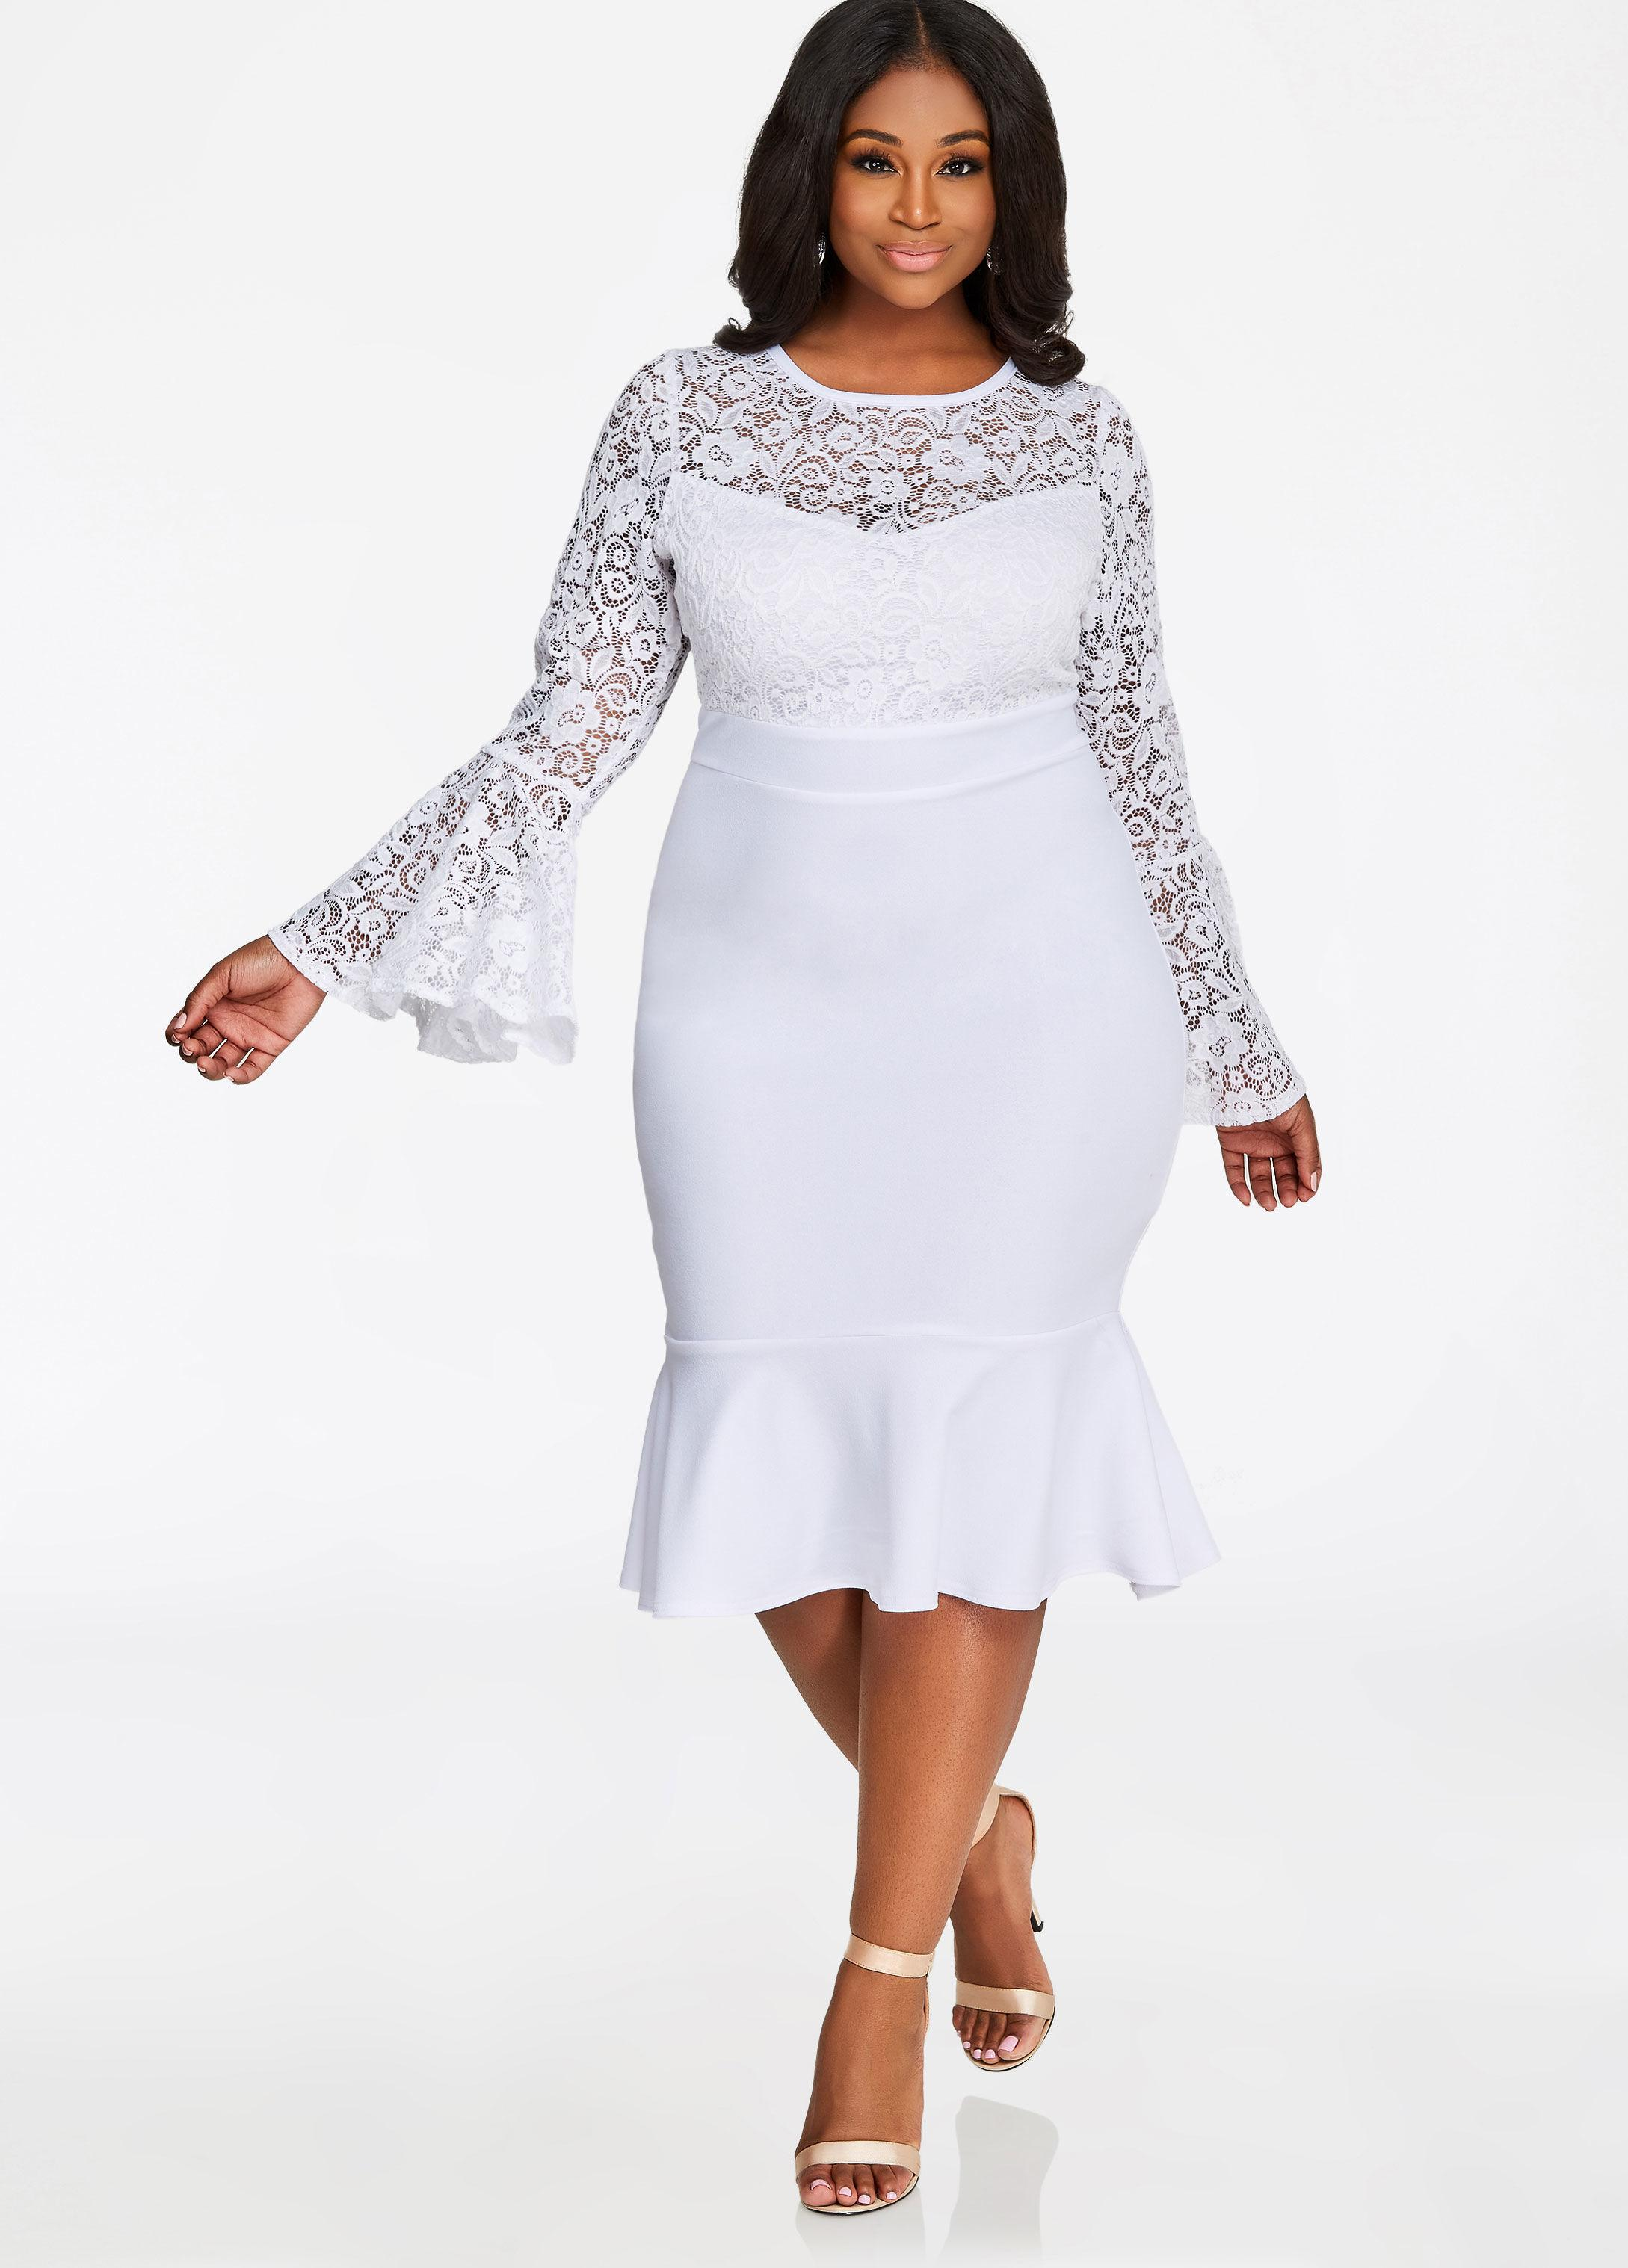 0fecb3baede Ashley Stewart Lace Top Crepe Skirt Dress in White - Lyst